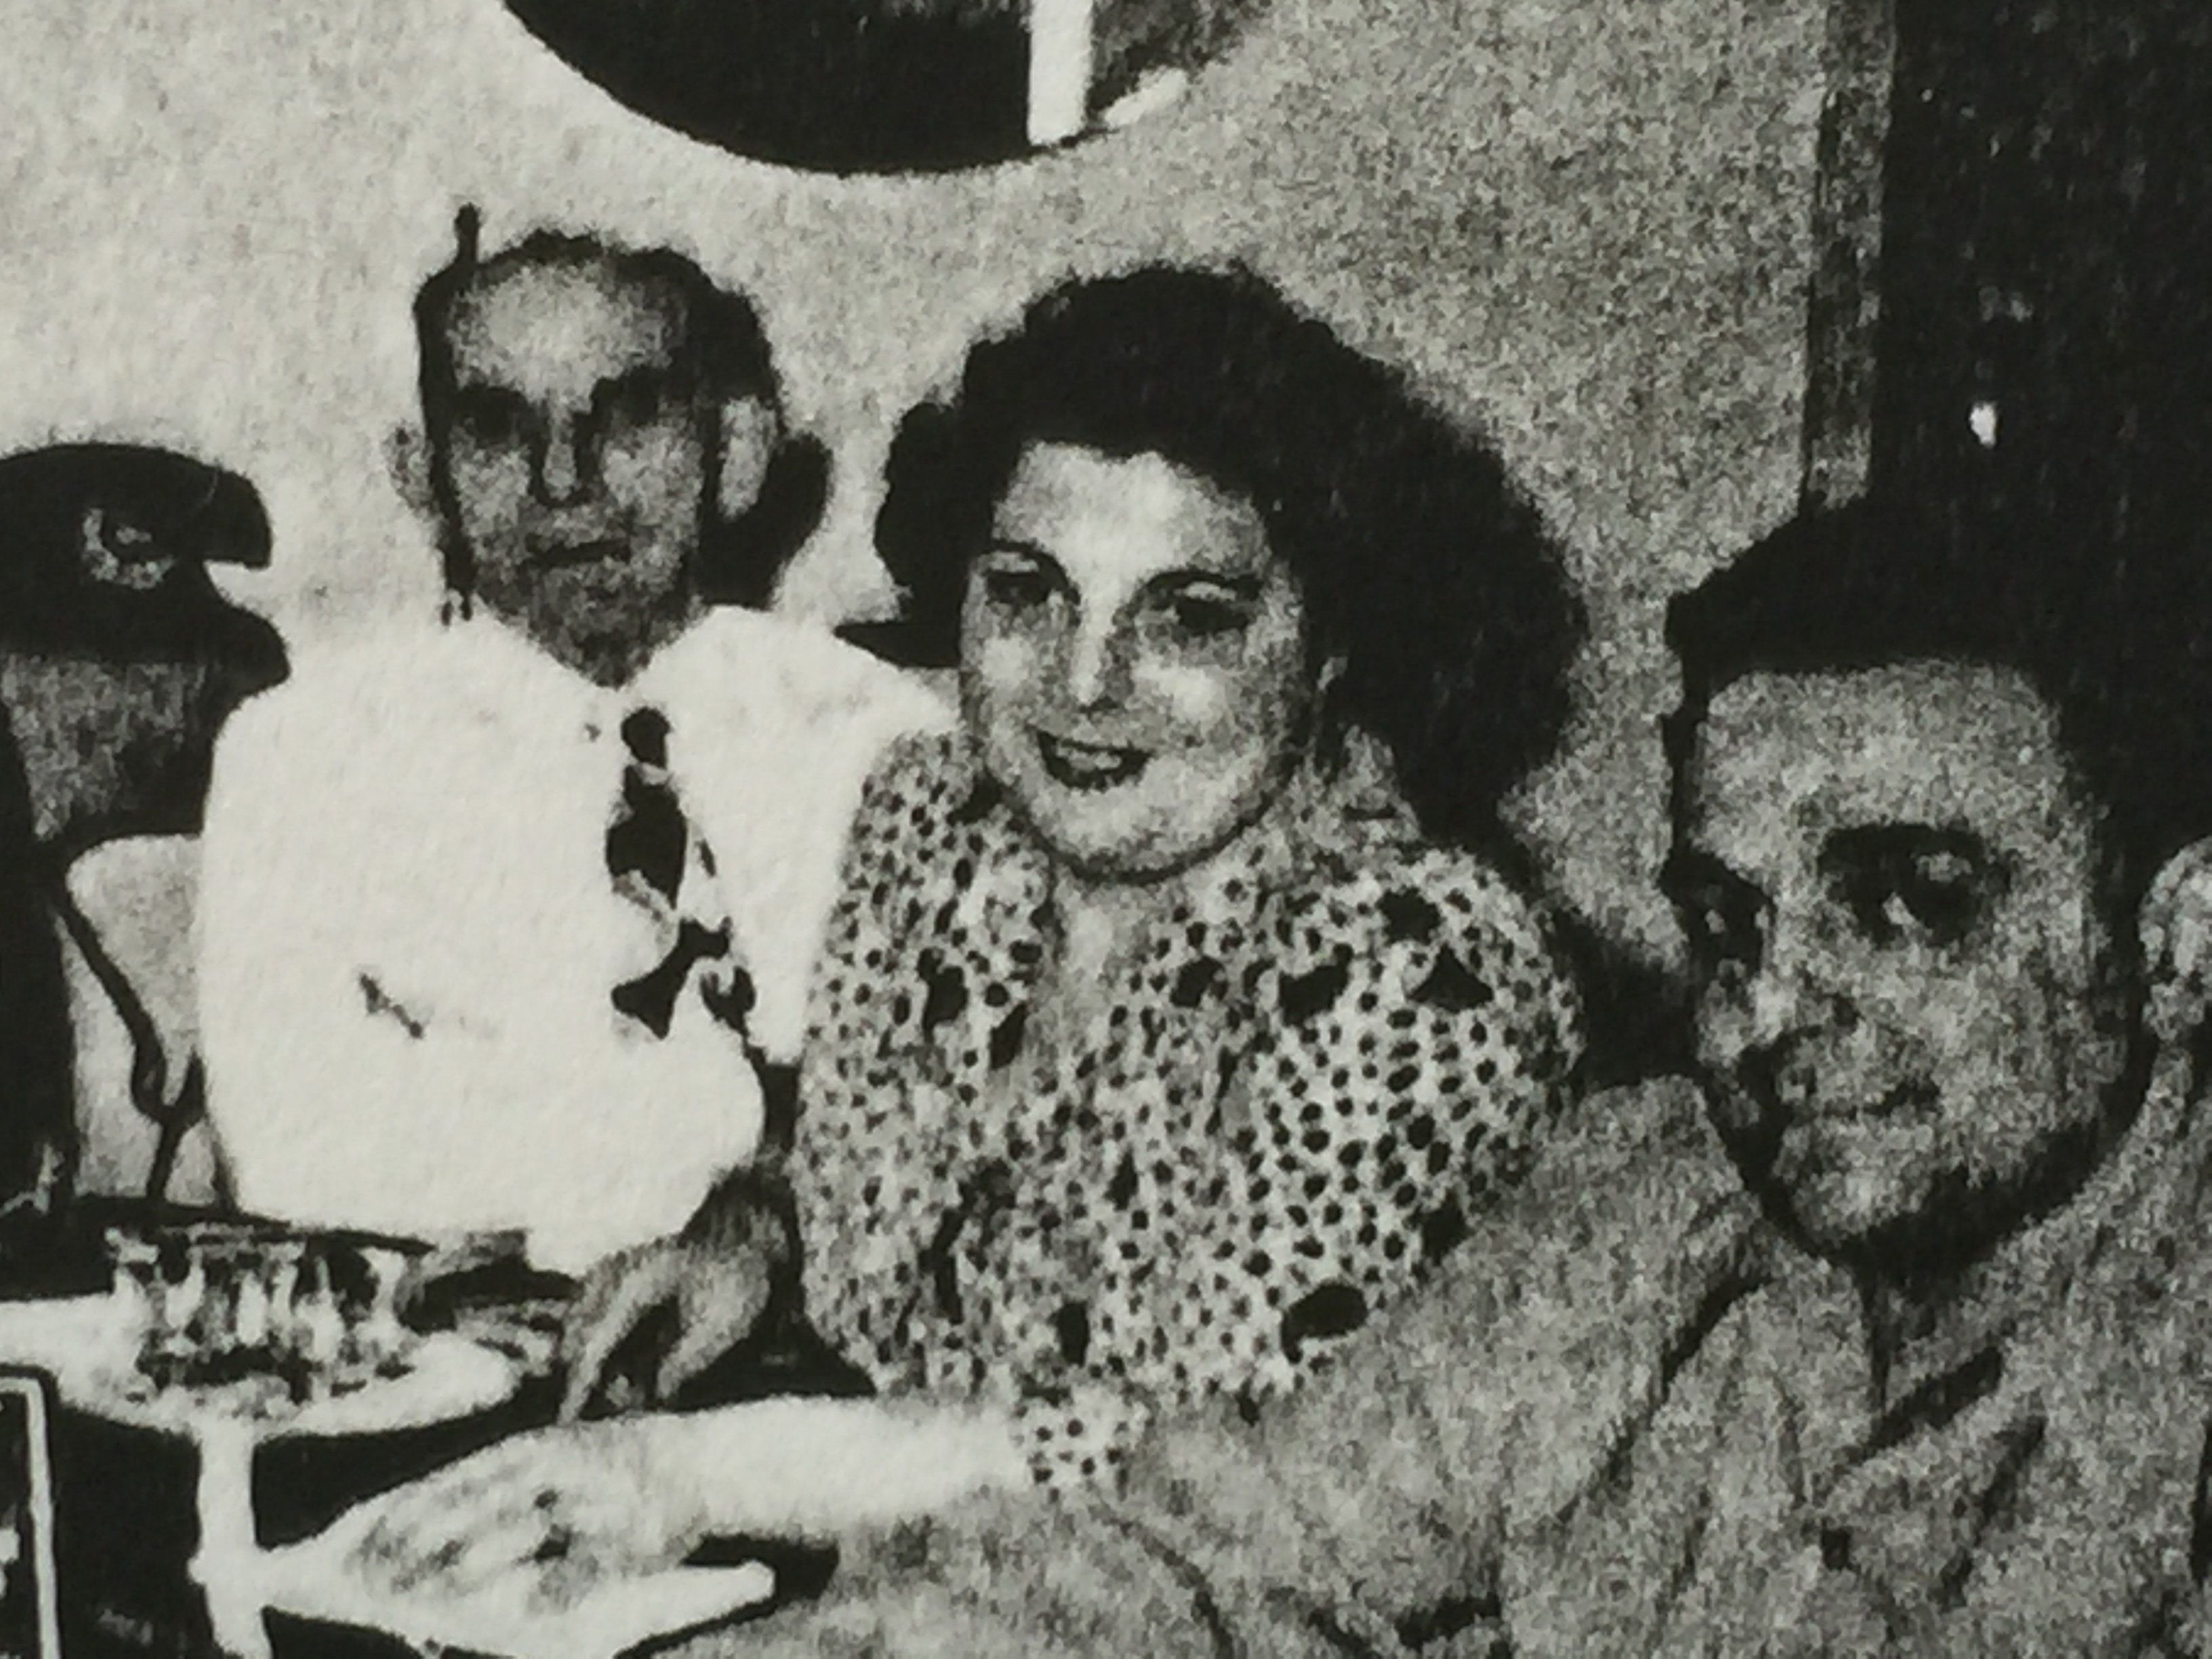 The author's Aunt Fay, center, with her husband Izzy far right, taken around 1950.